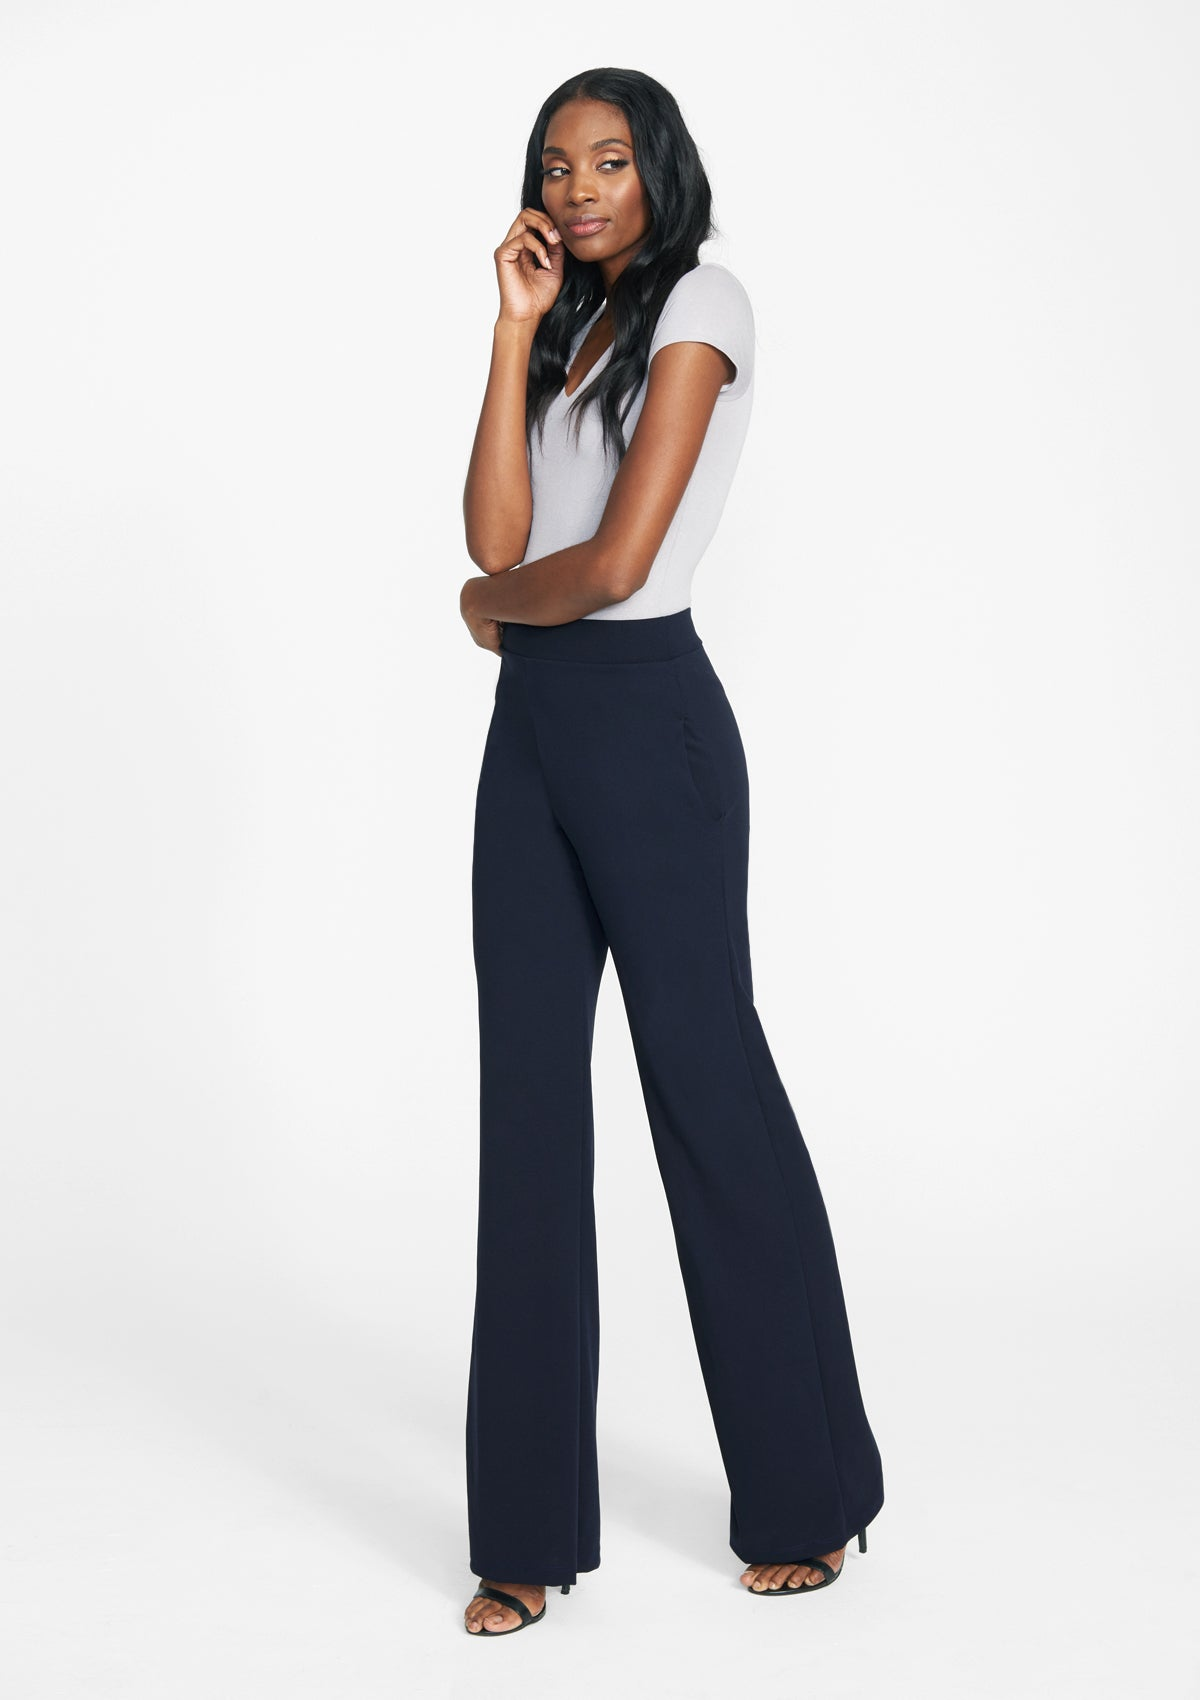 Alloy Apparel Tall Cassie Flare Pants for Women in Navy Size S   Polyester